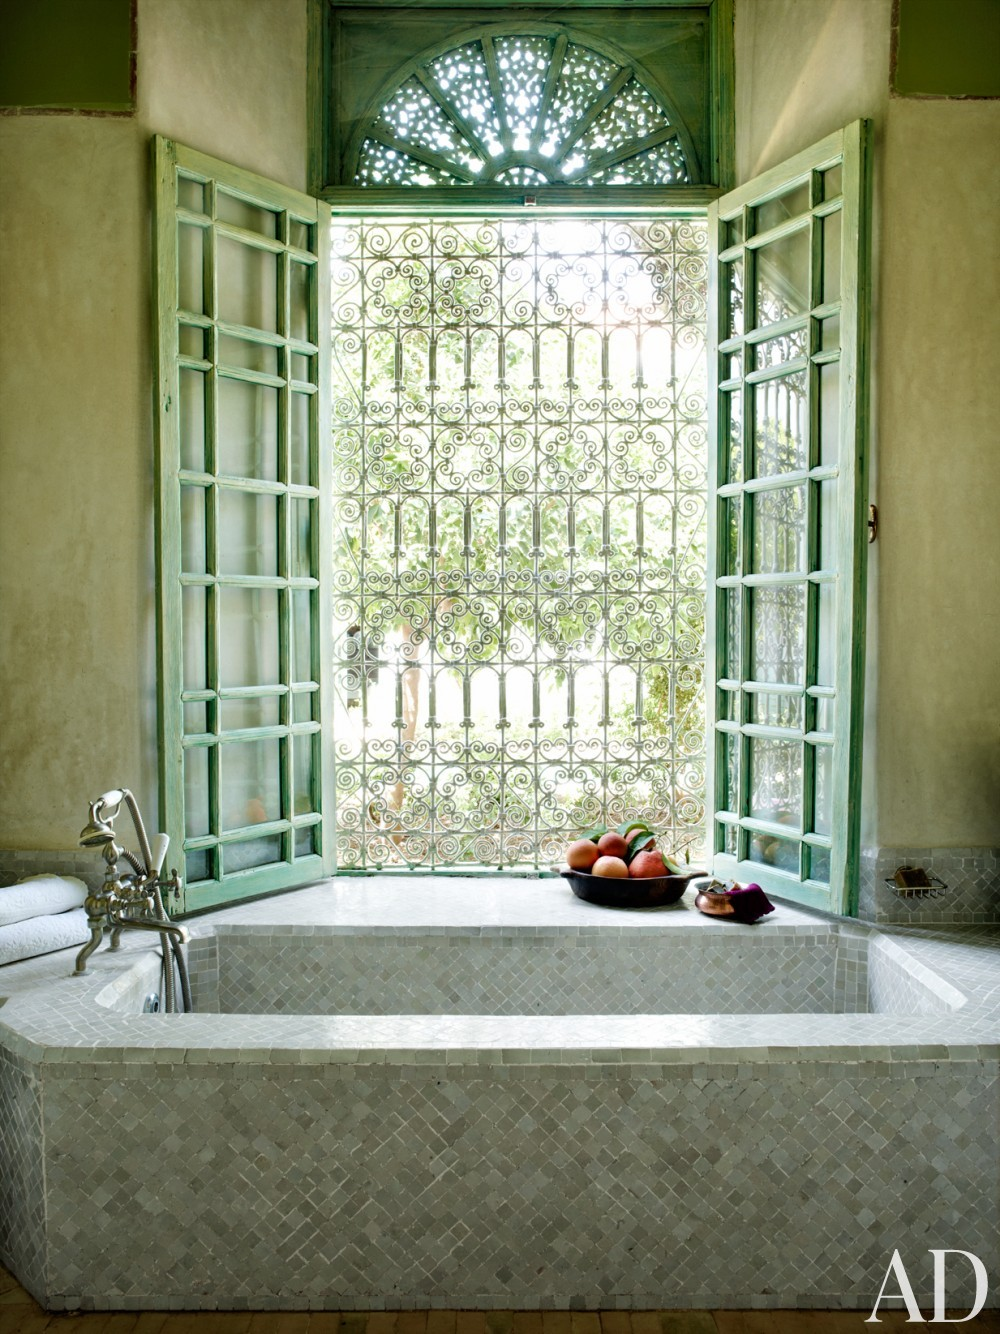 Exotic Bathroom by Ahmad Sardar-Afkhami in Marrakech, Morocco